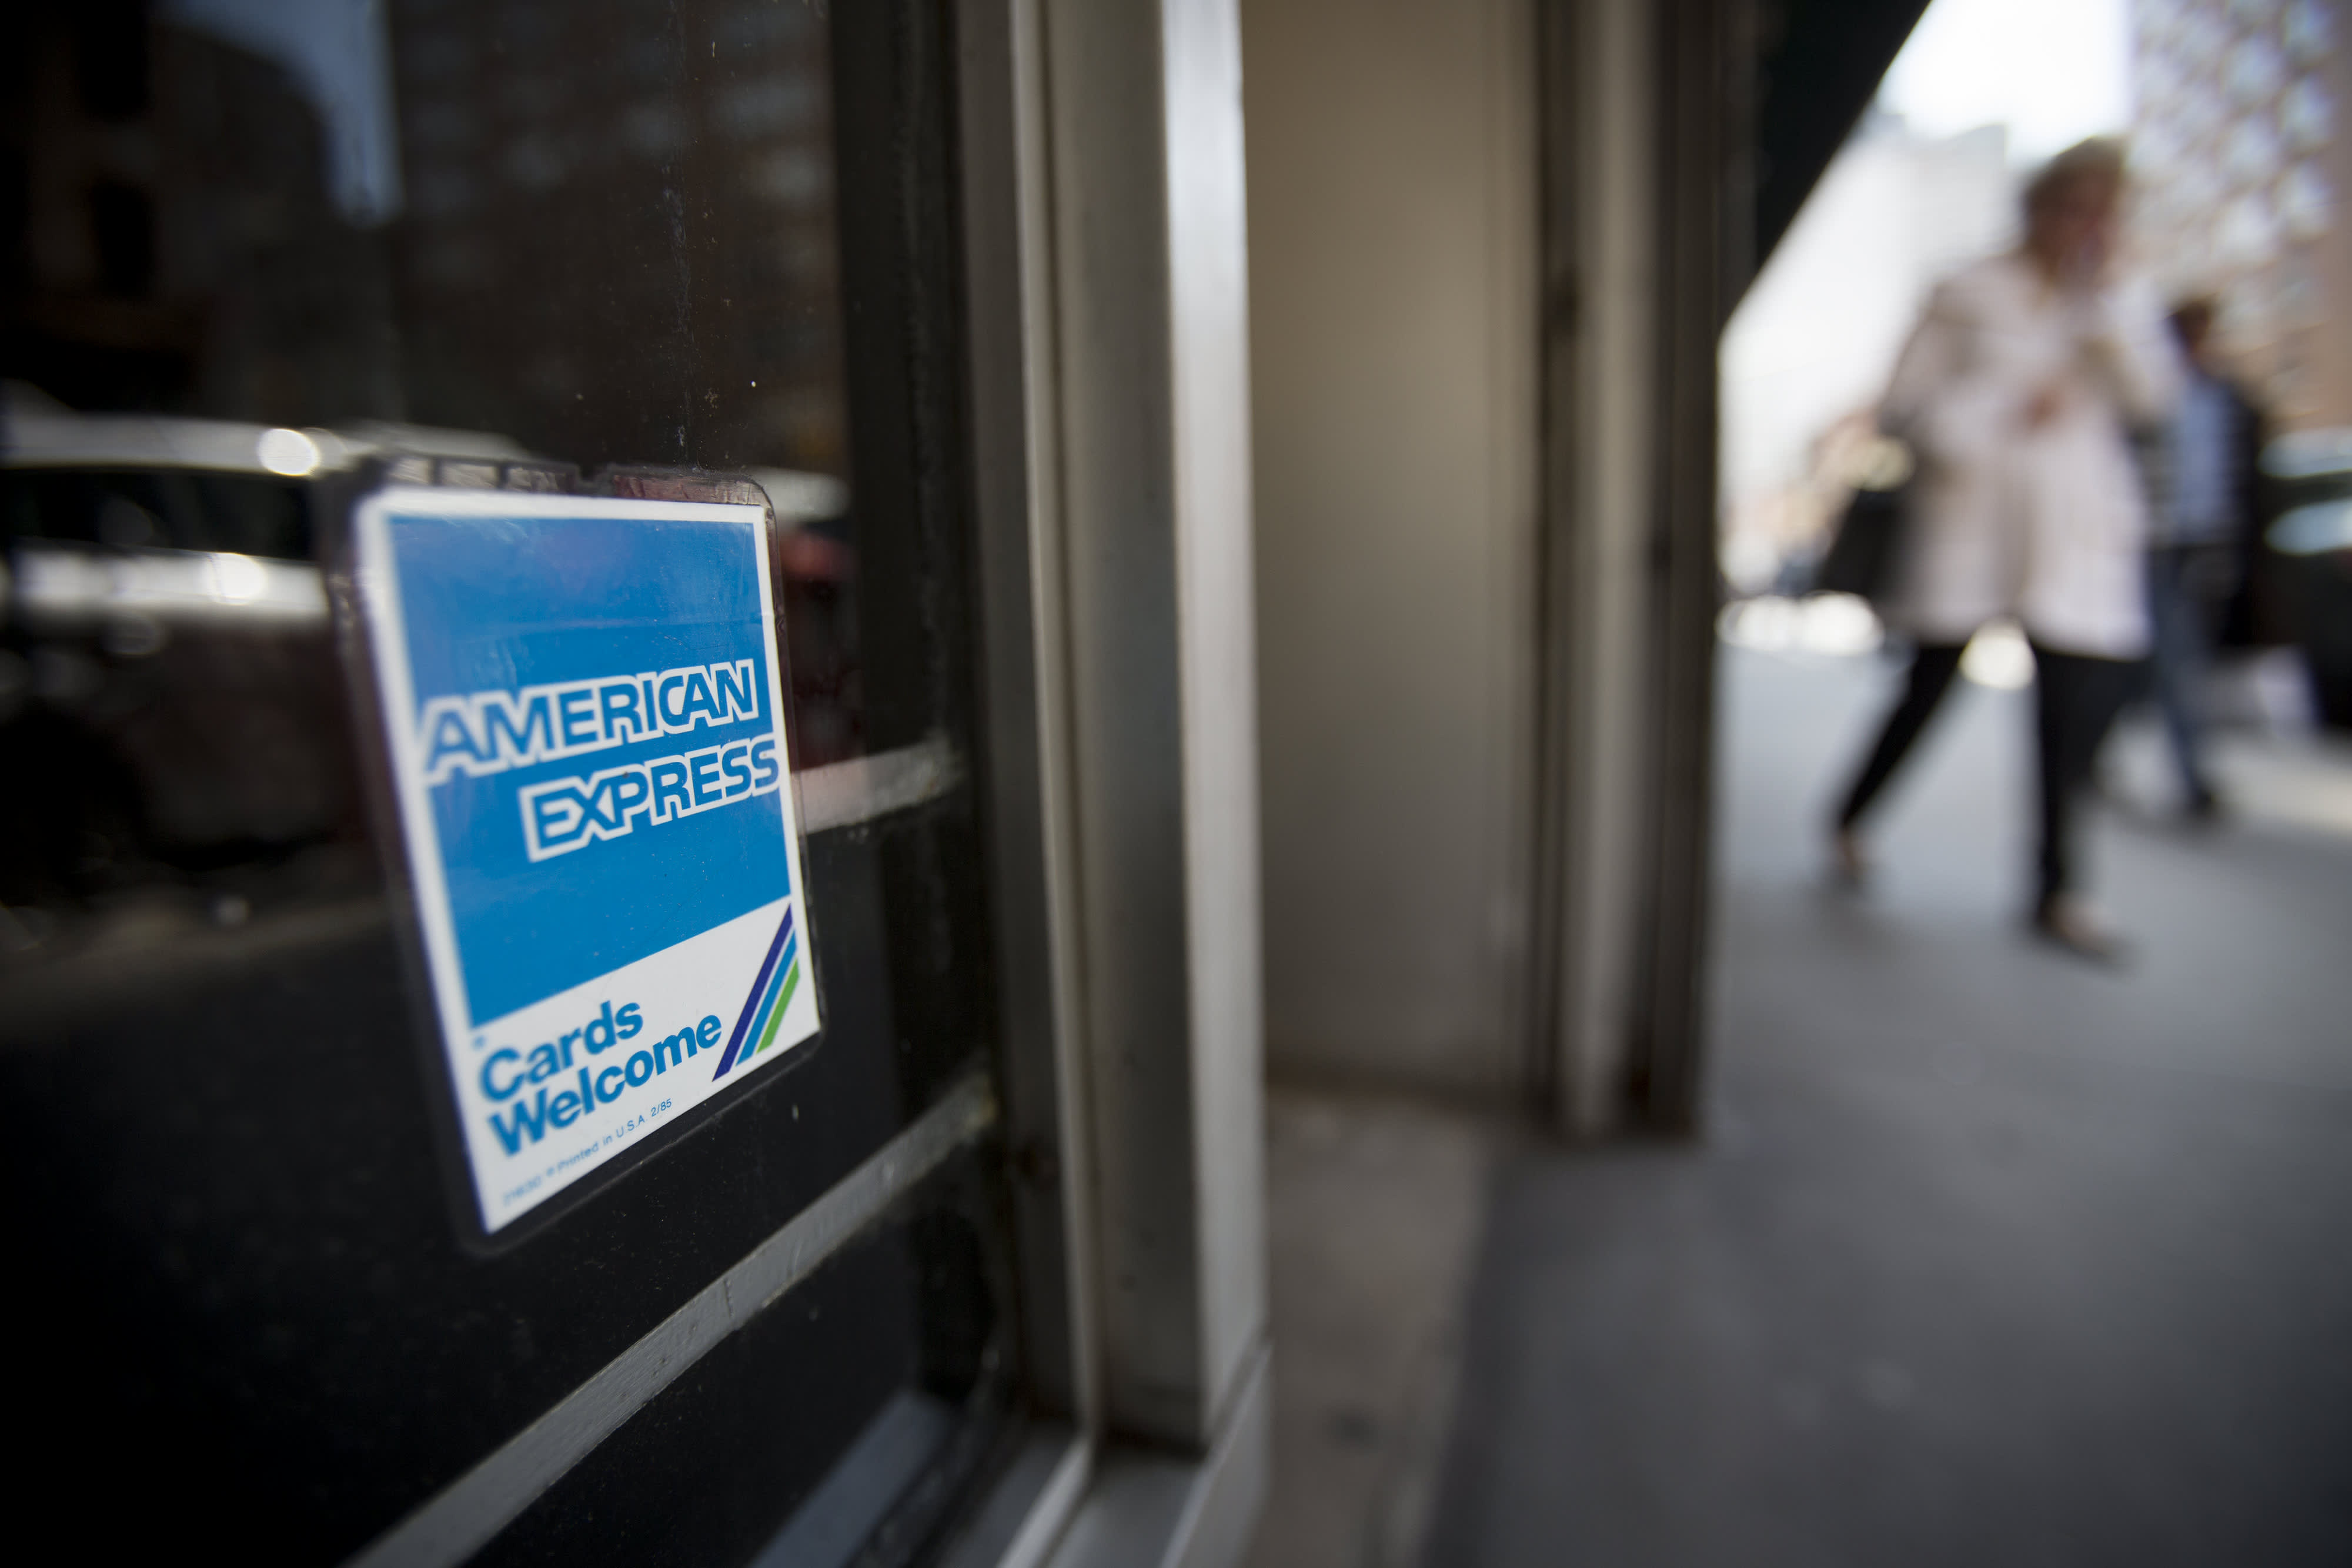 If you invested $1,000 in American Express 10 years ago, here's how much you'd have now